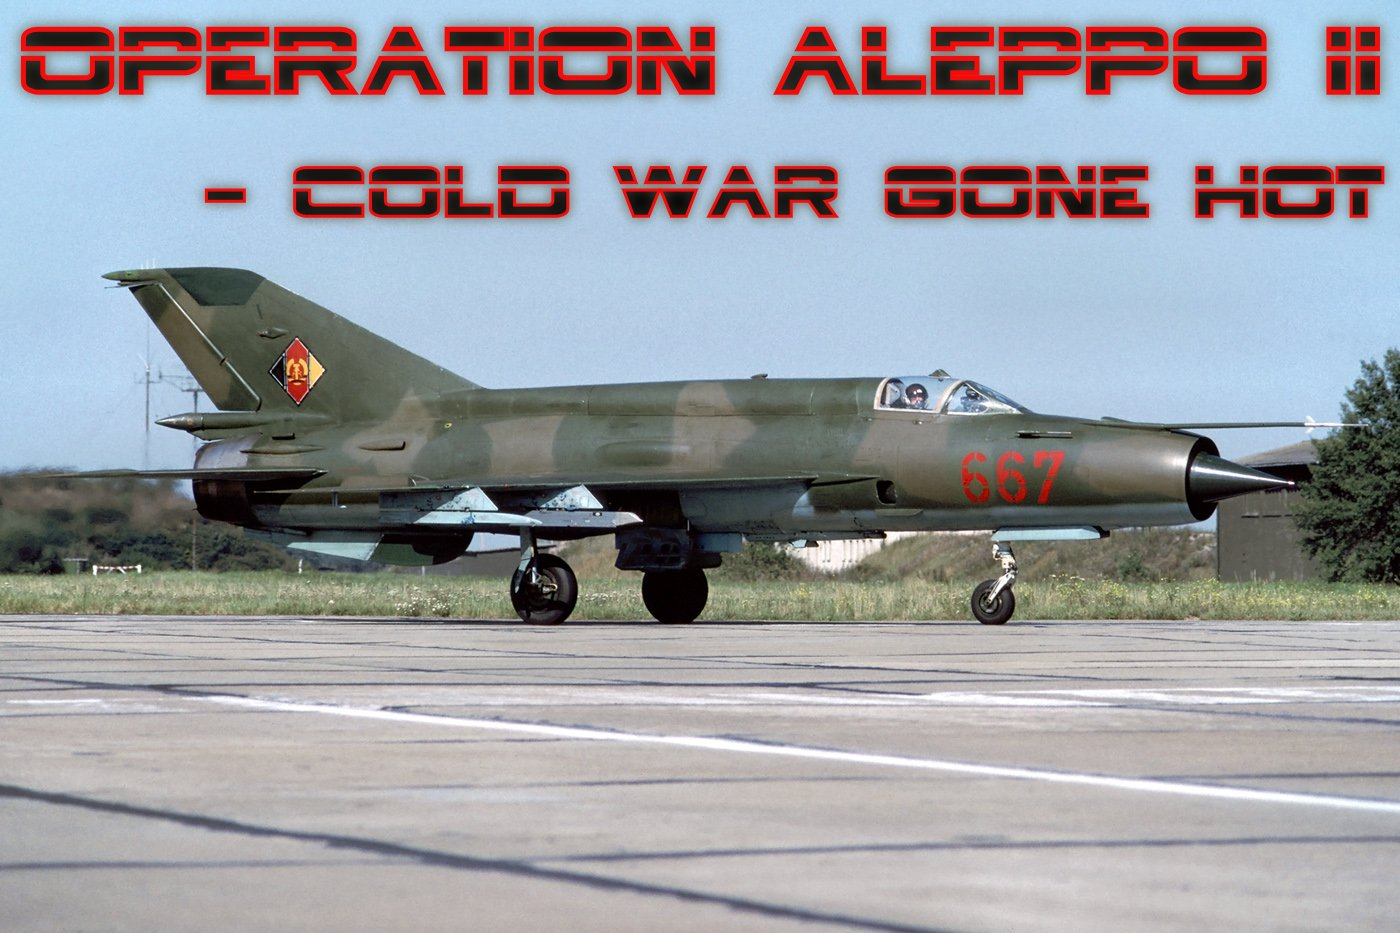 Operation Aleppo II - Cold War Gone Hot! Updated for V2.7